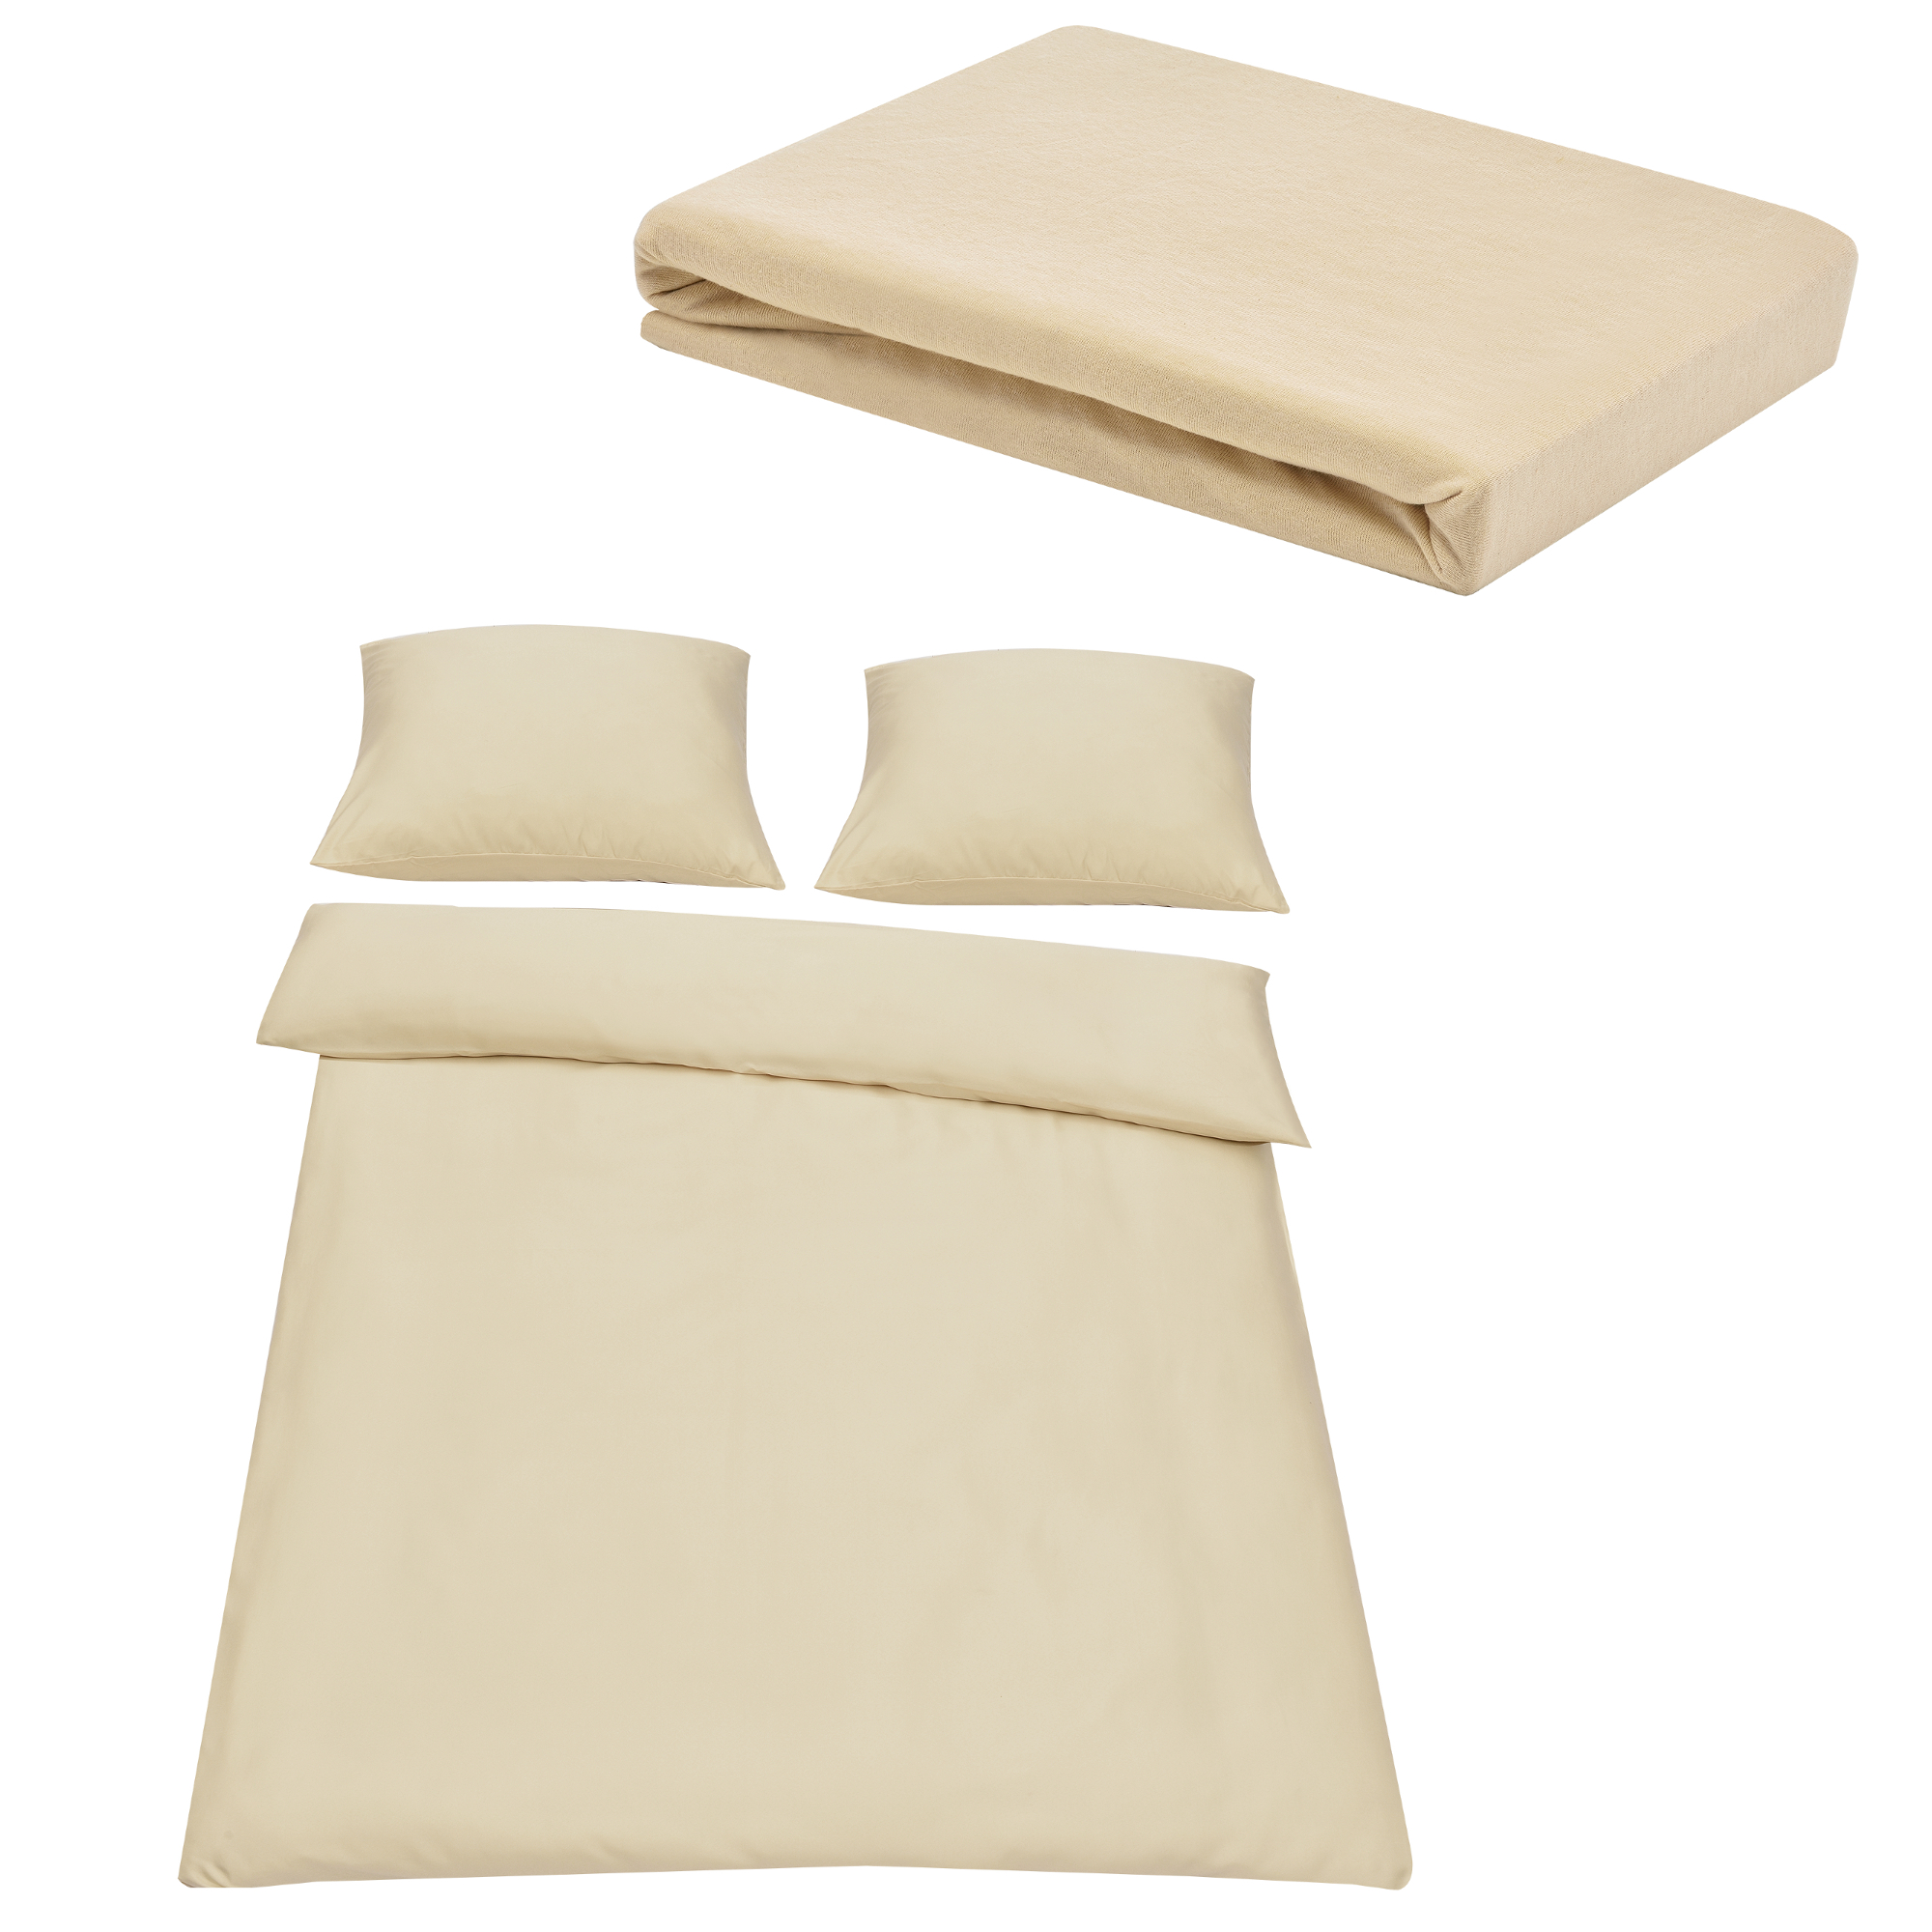 neuhaus drap housse 180 200 x 200 cm linge de lit 200x200 beige cr me ebay. Black Bedroom Furniture Sets. Home Design Ideas